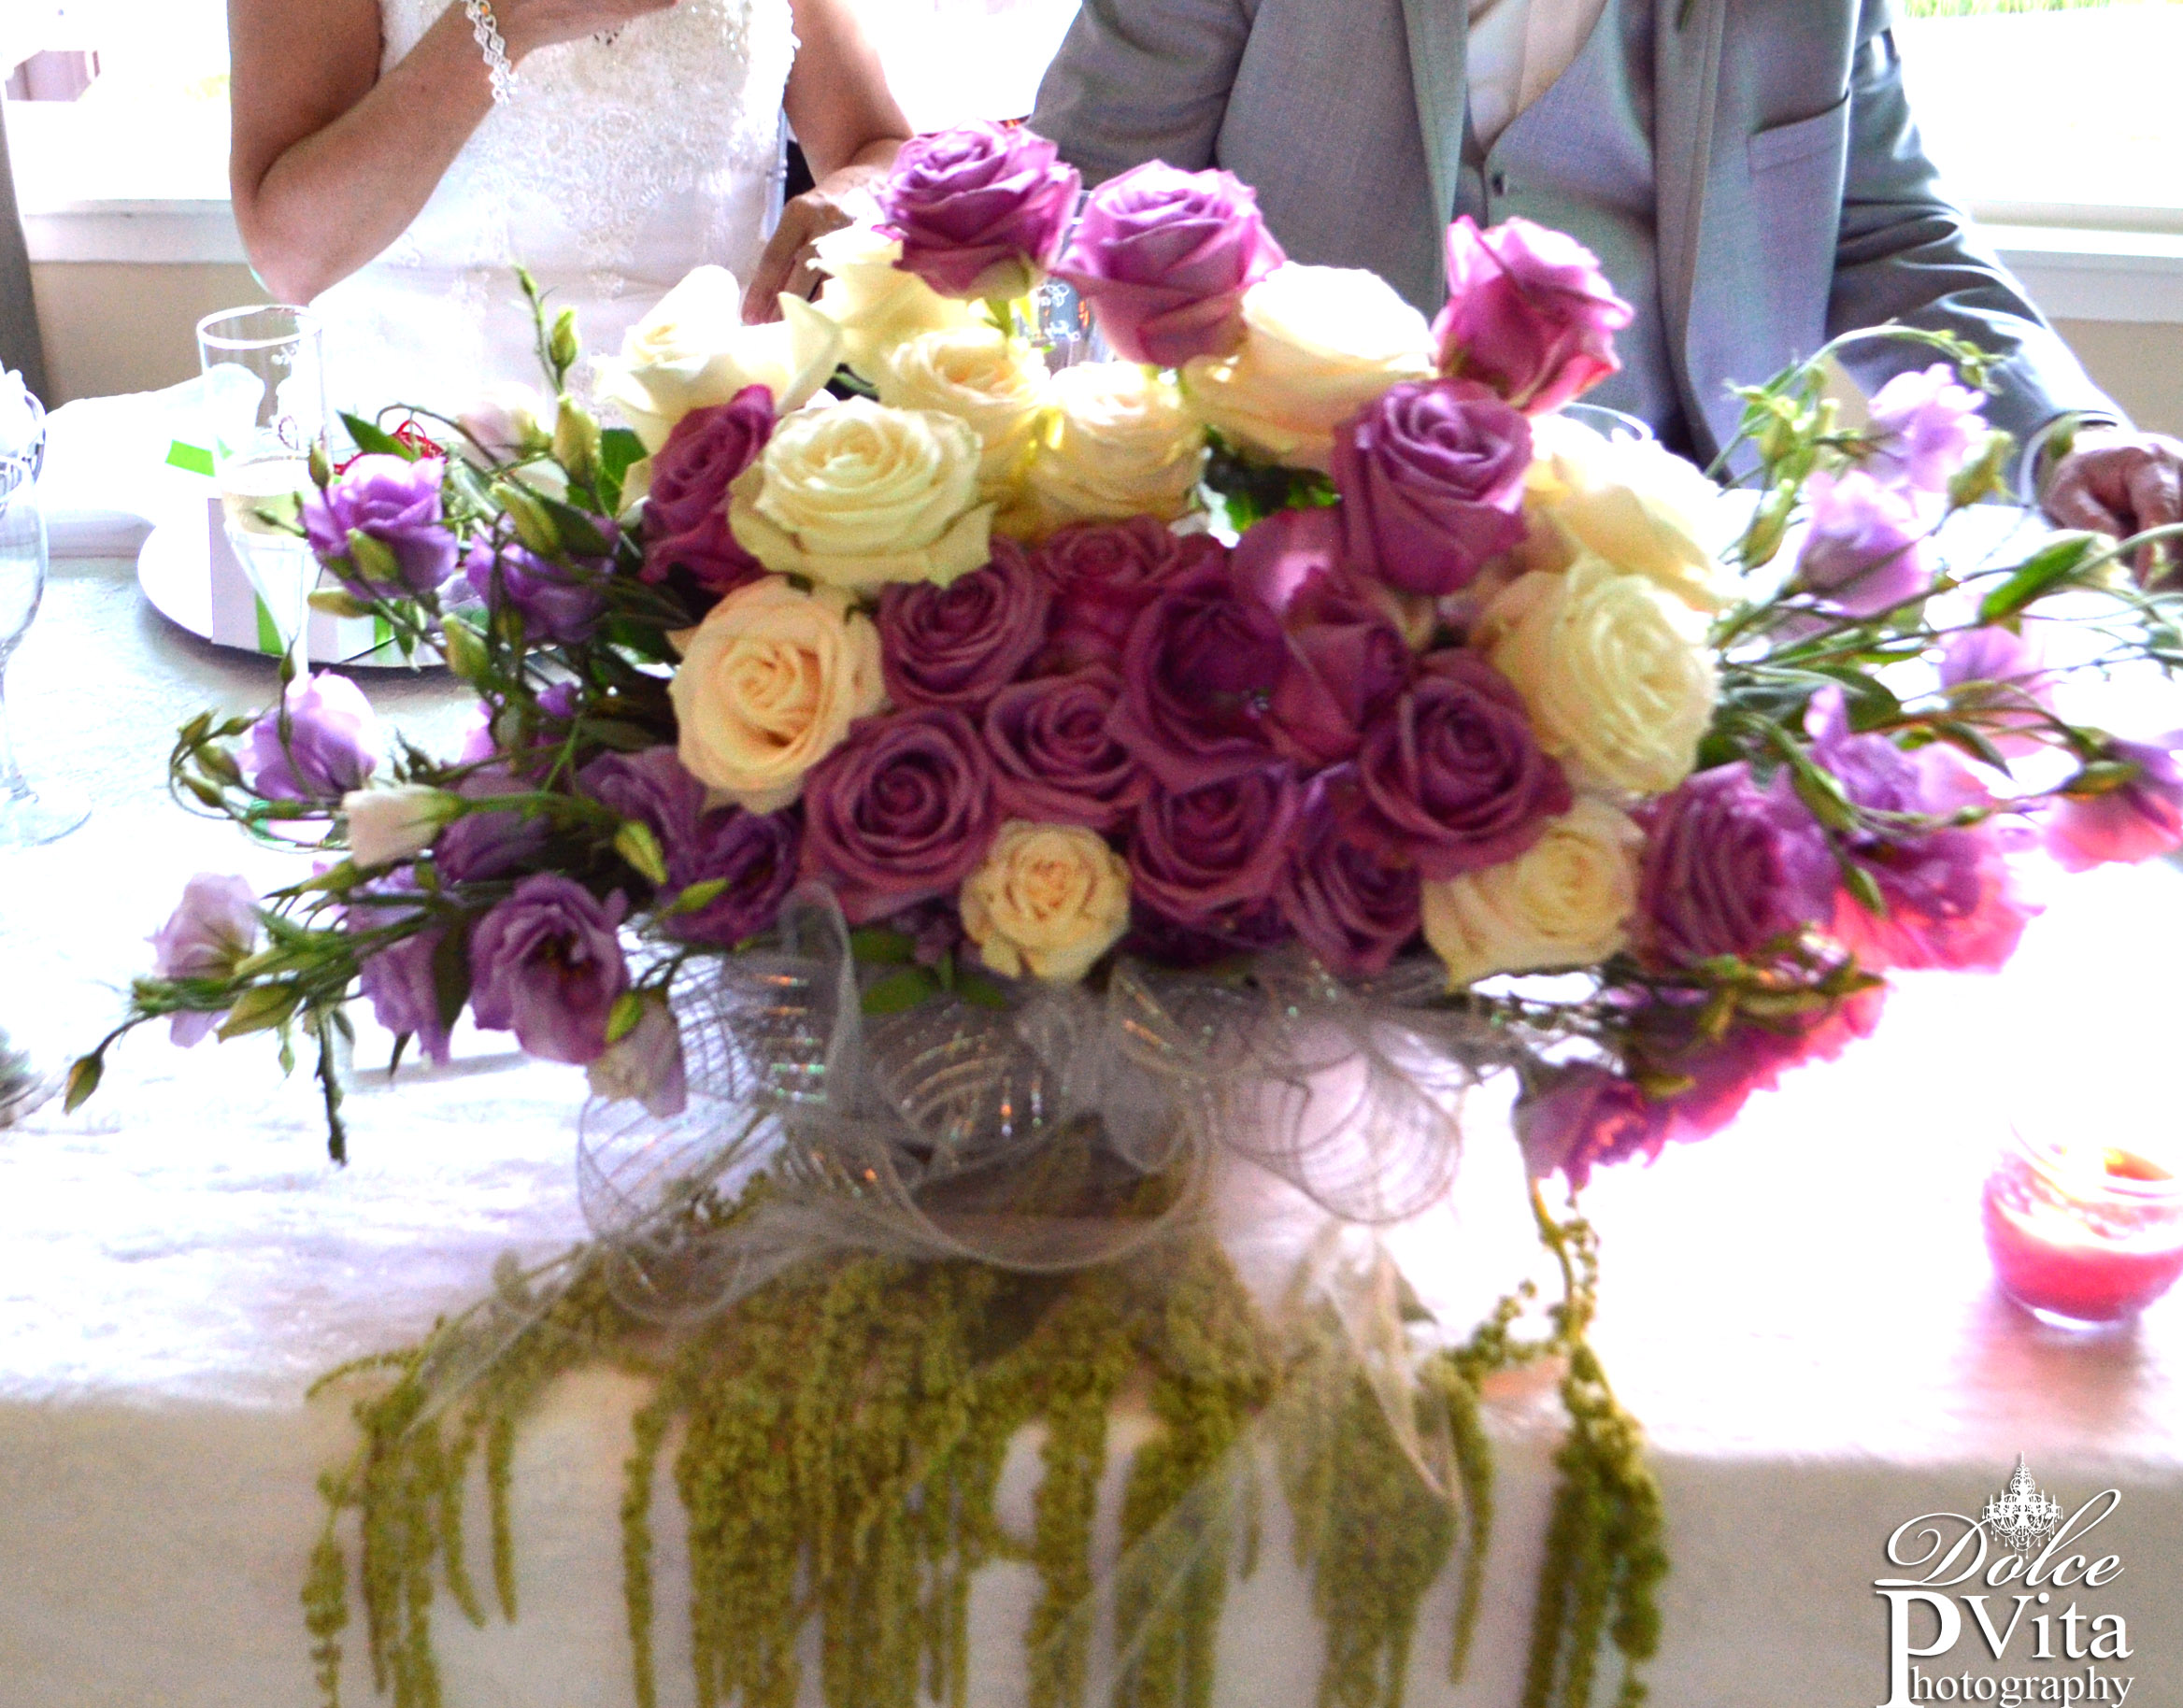 Sweetheart table centerpiece roses